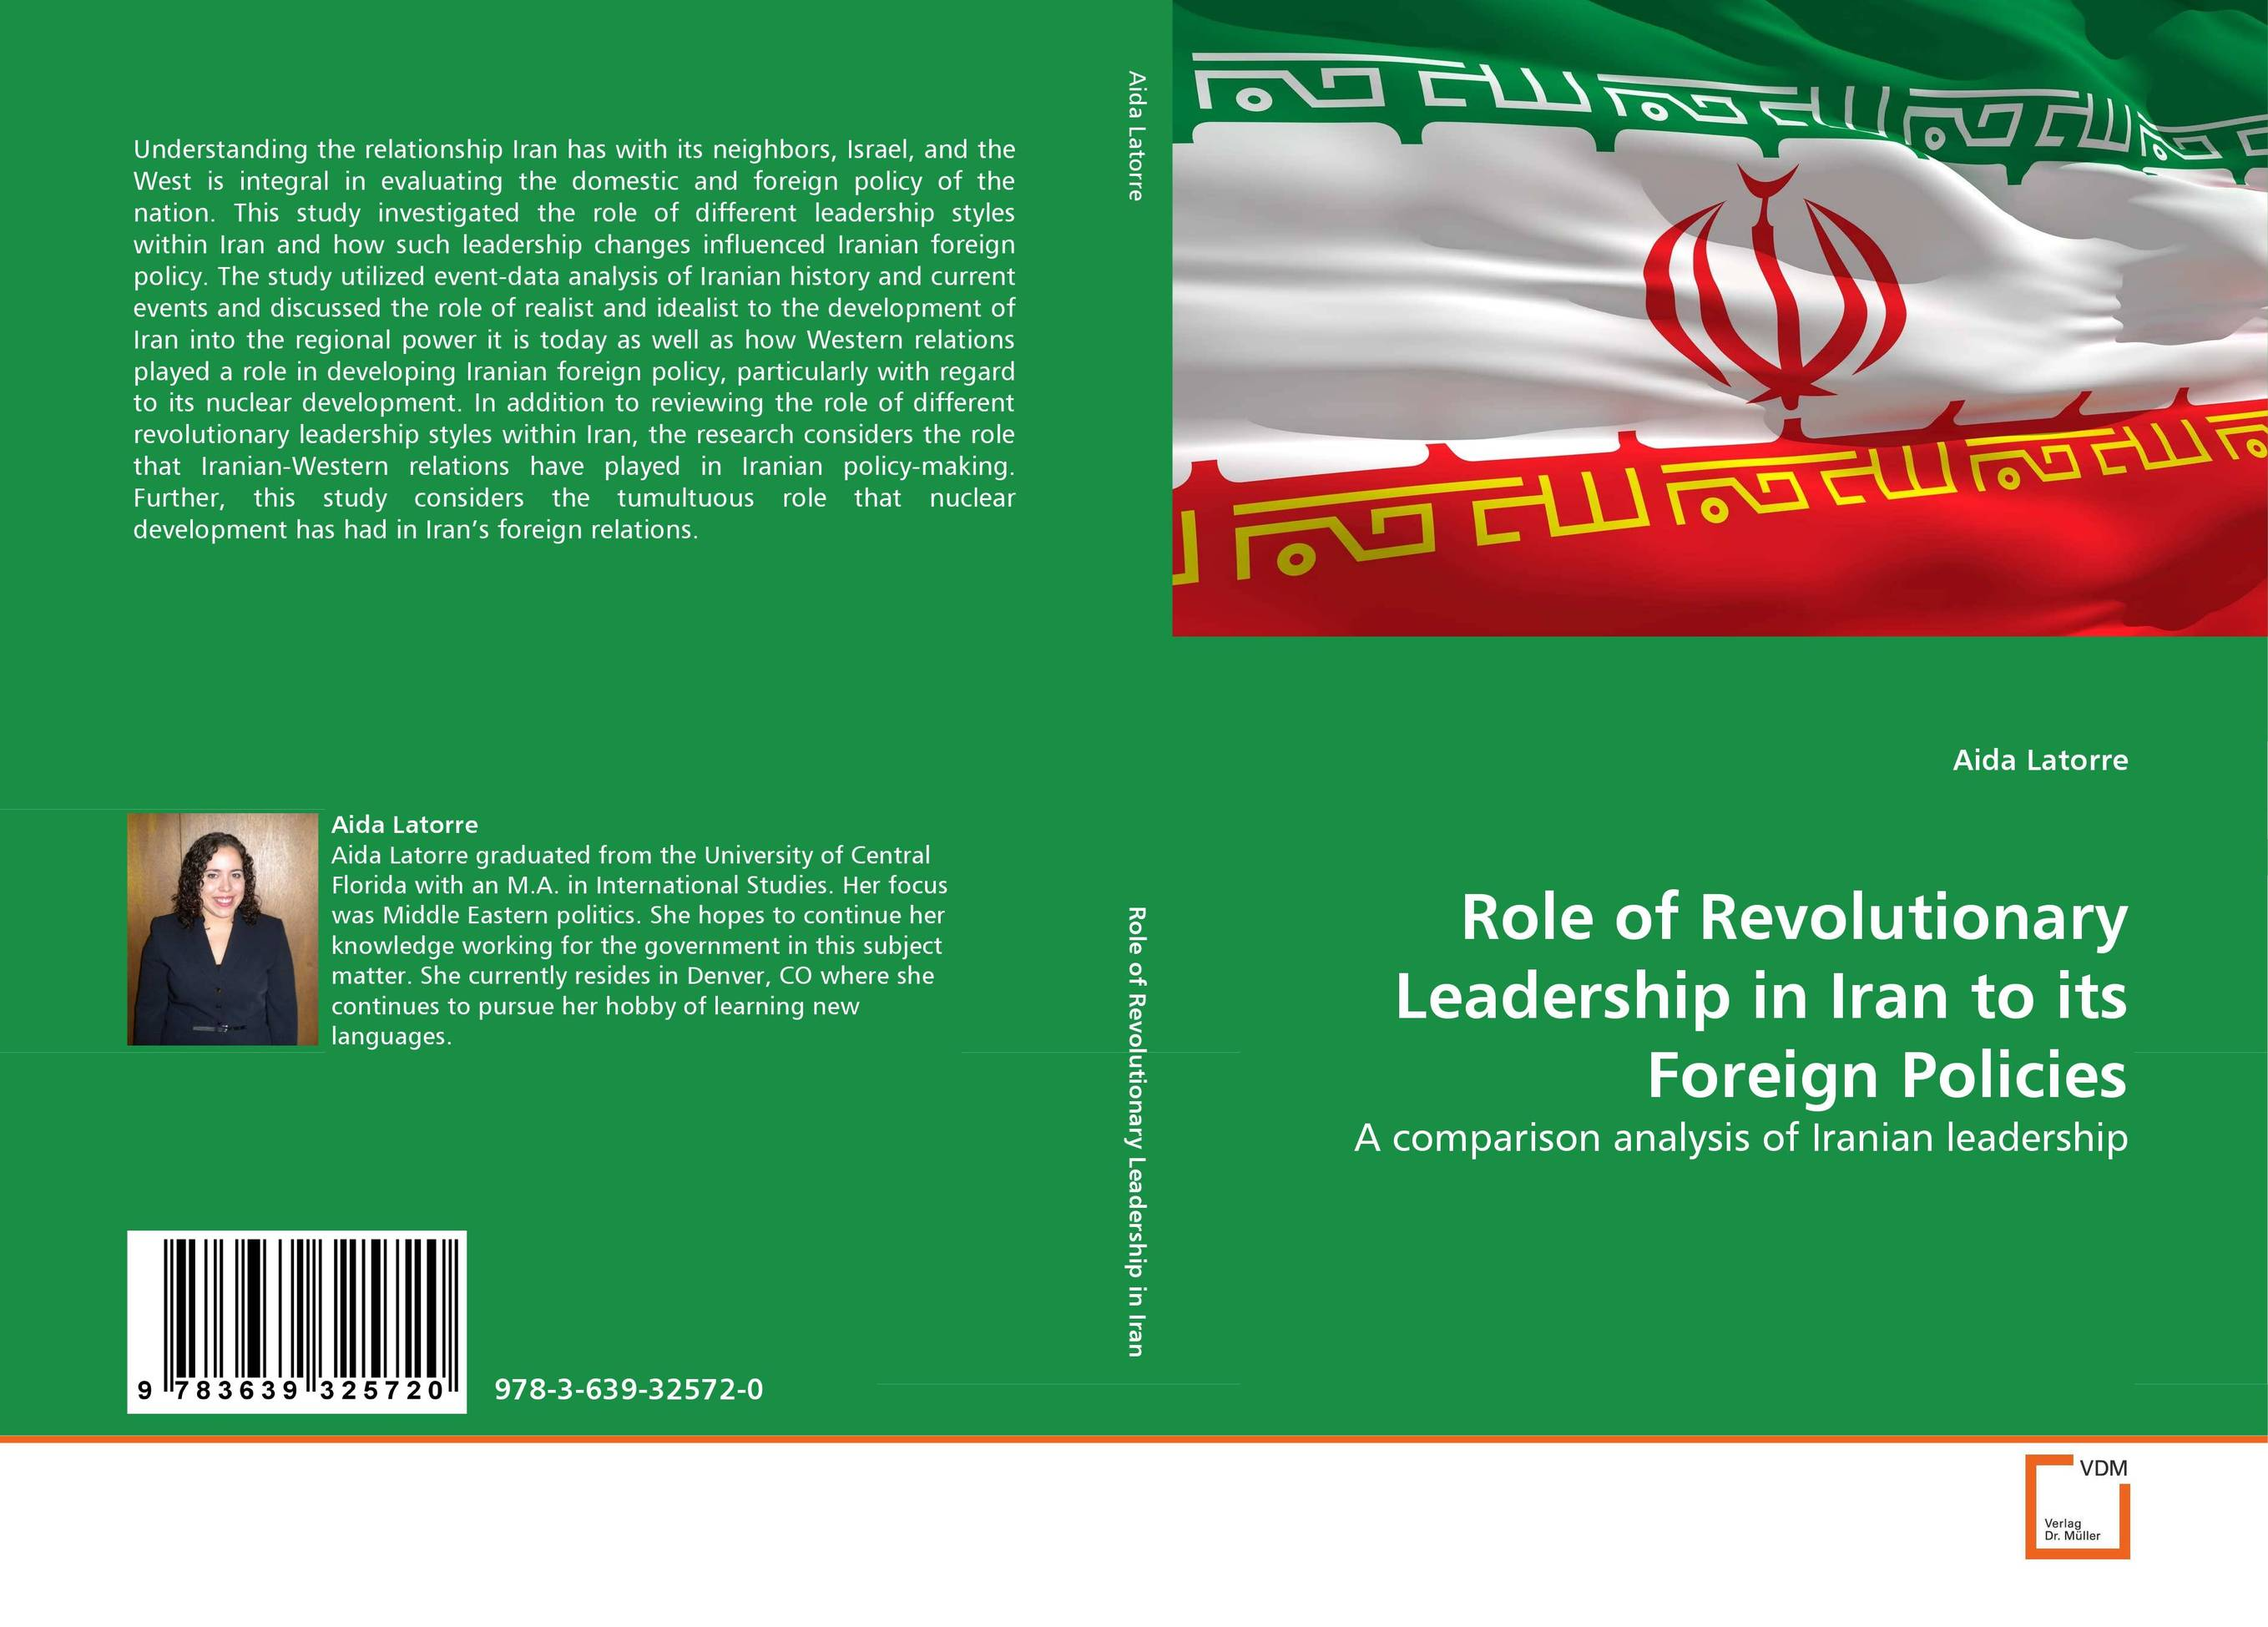 Role of Revolutionary Leadership in Iran to its Foreign Policies role of school leadership in promoting moral integrity among students